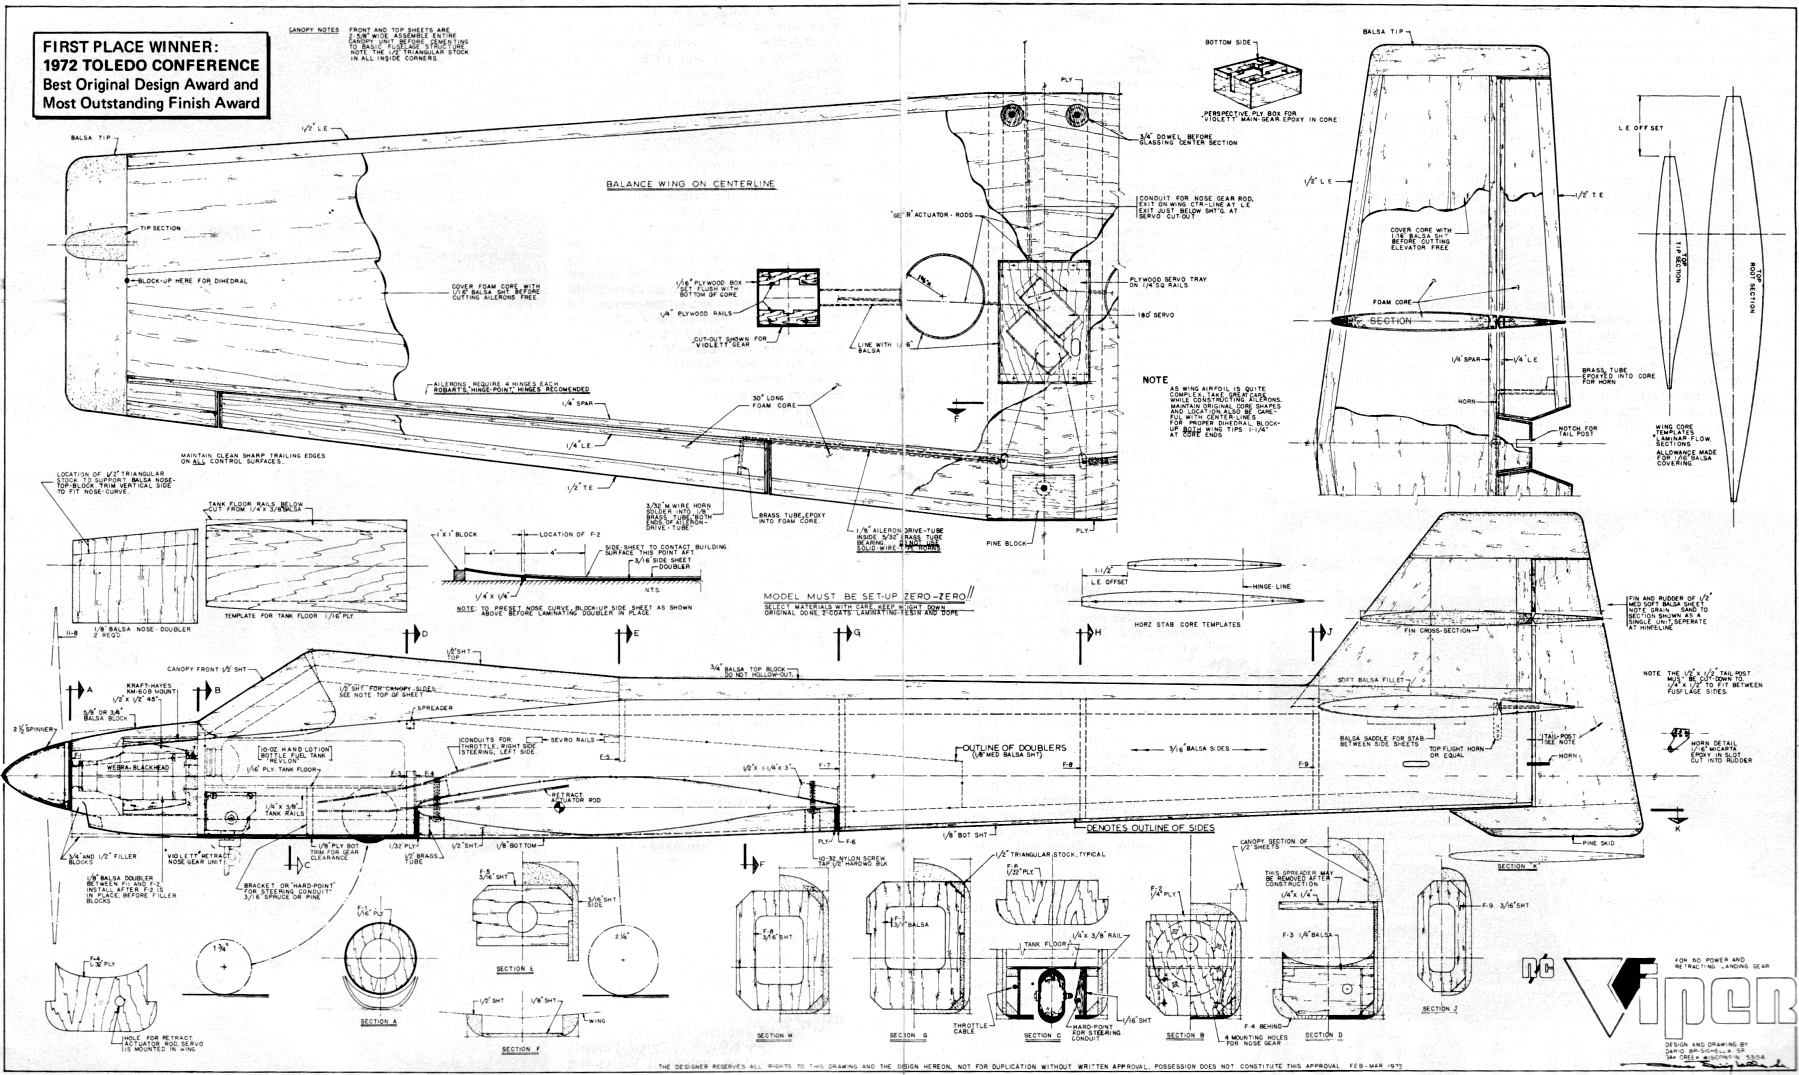 Viper Article & Plans, January 1973, American Aircraft